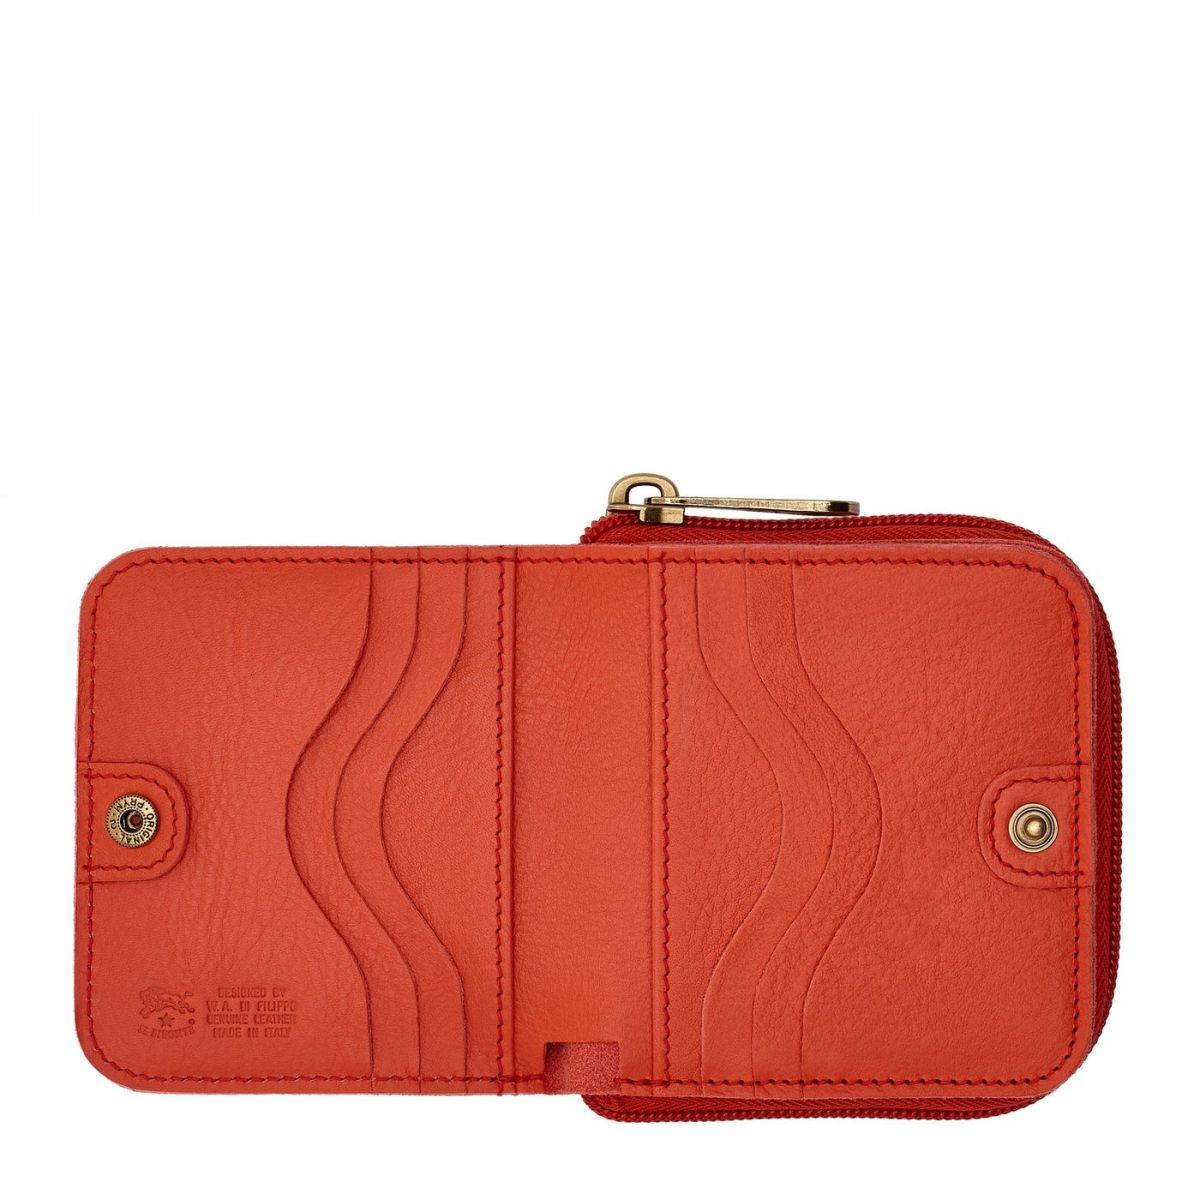 Women's Wallet  in Cowhide Leather SMW117 color Gazpacho | Details